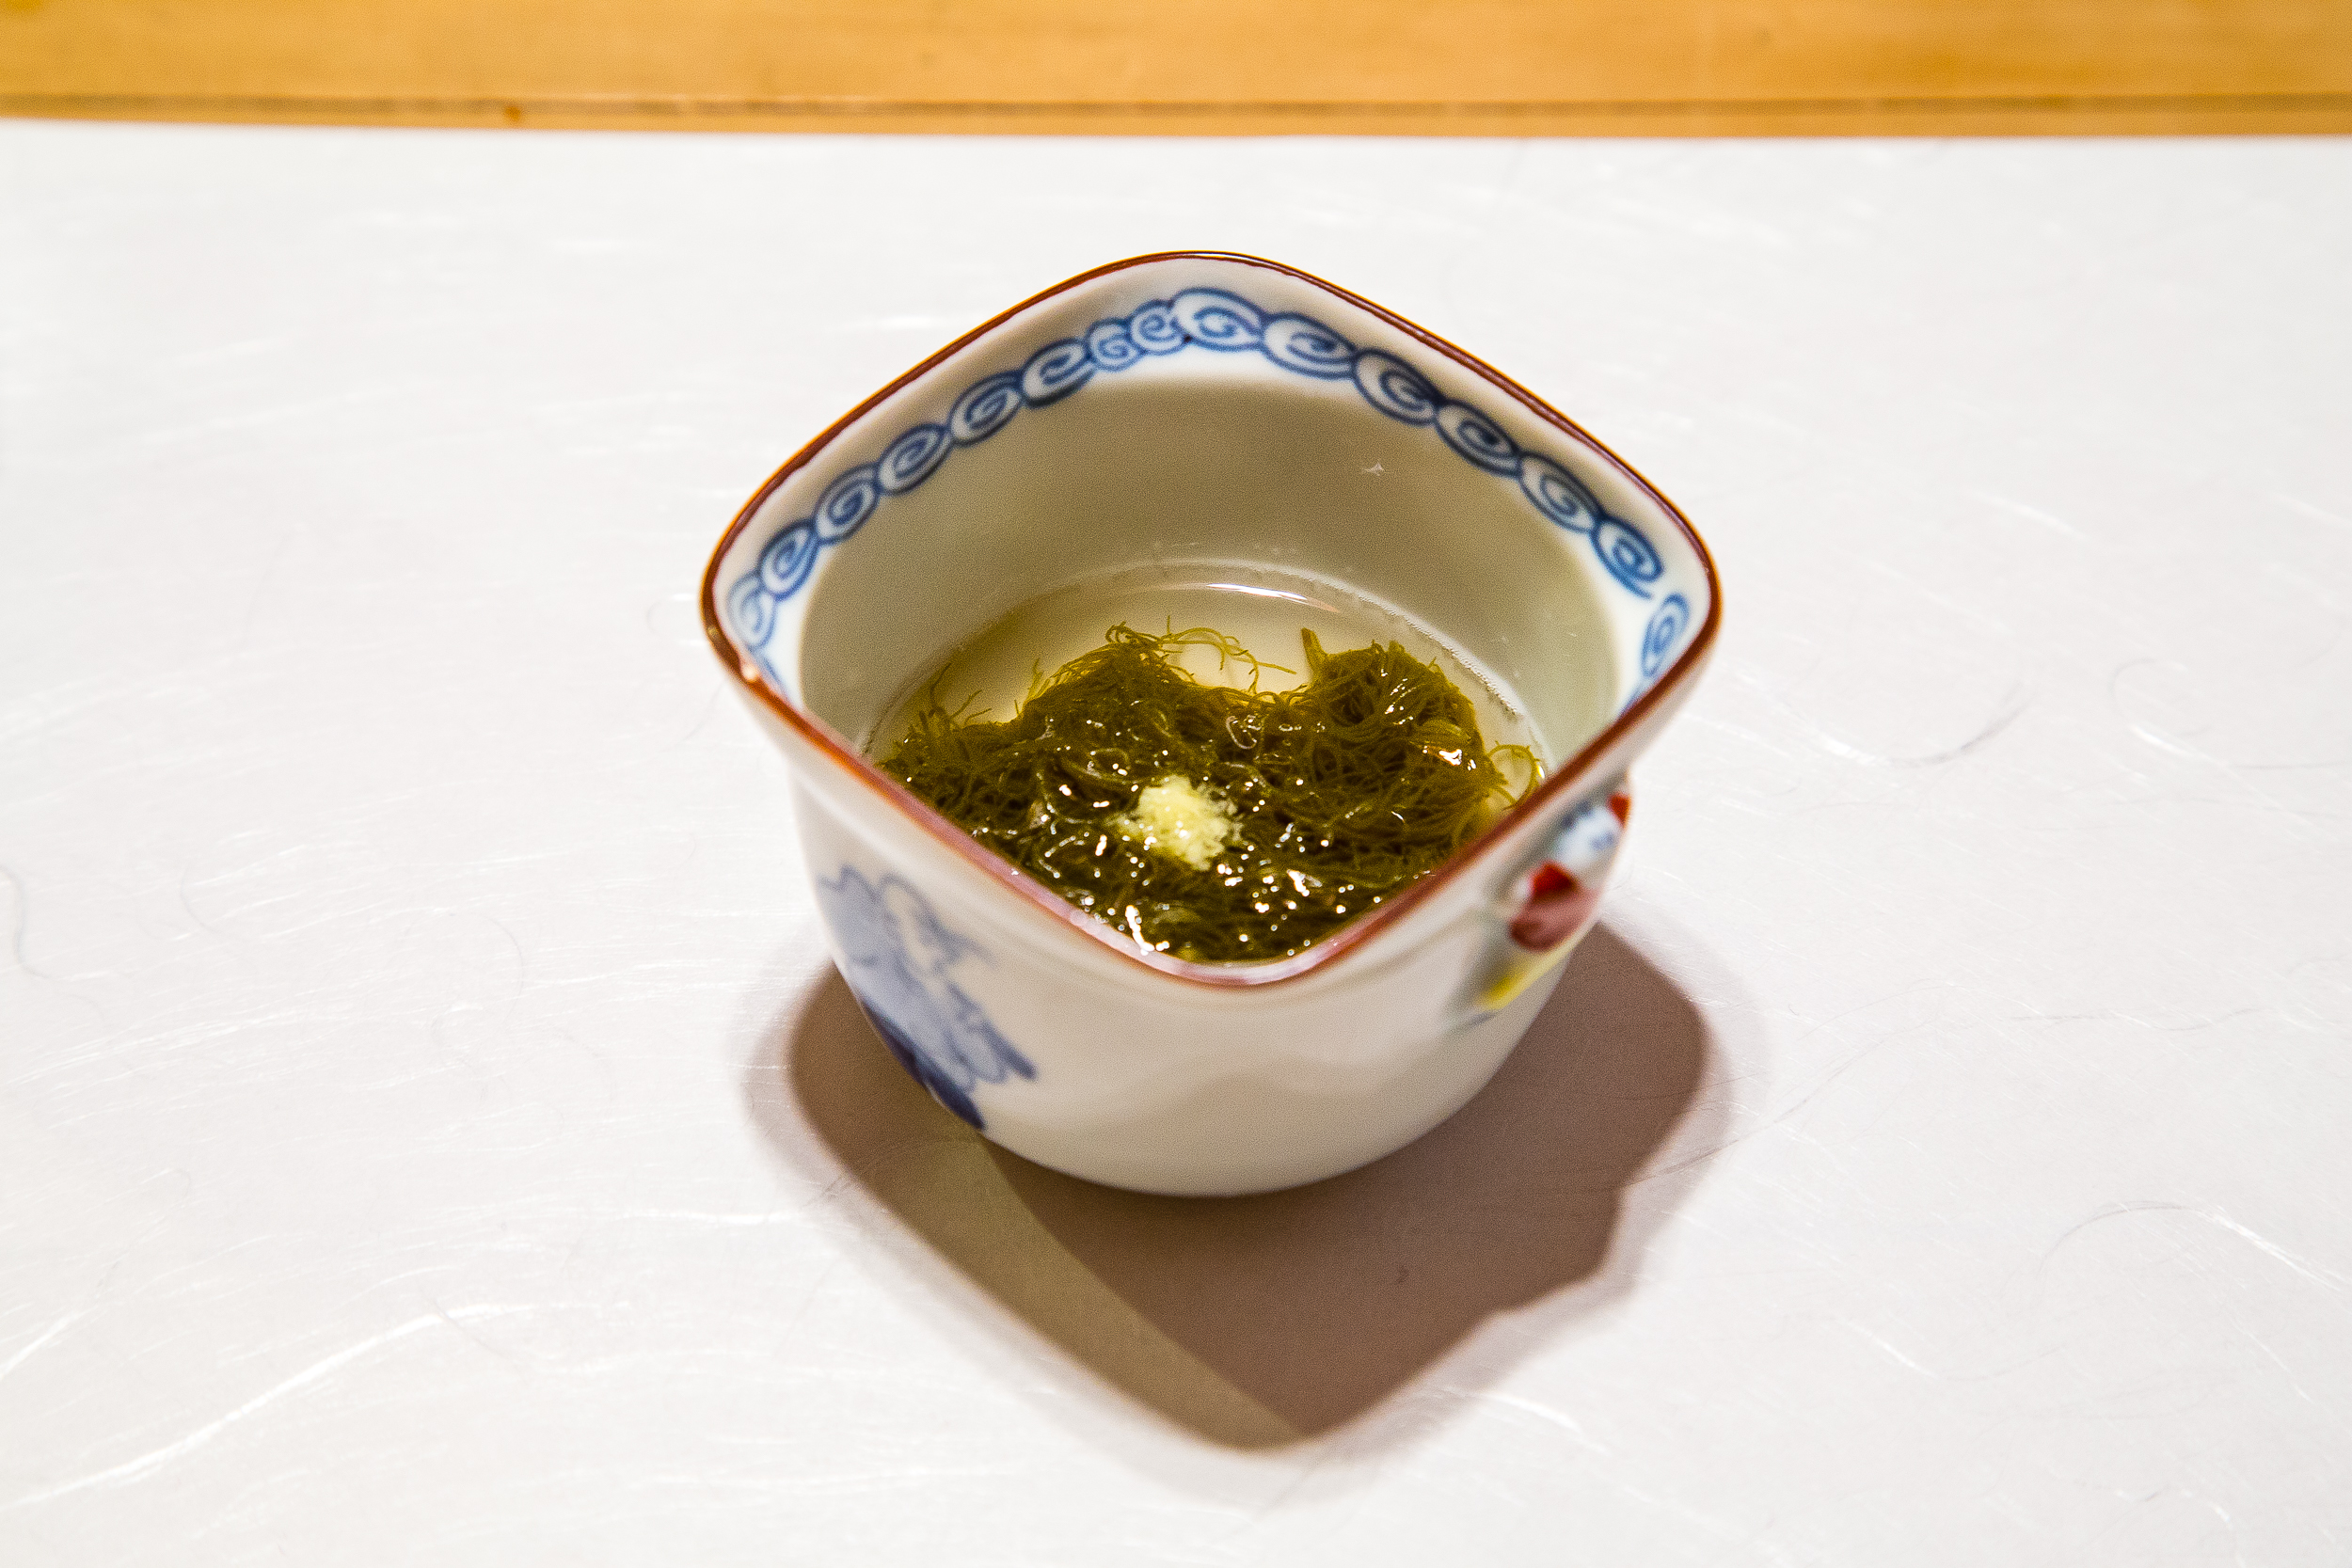 A type of Seaweed